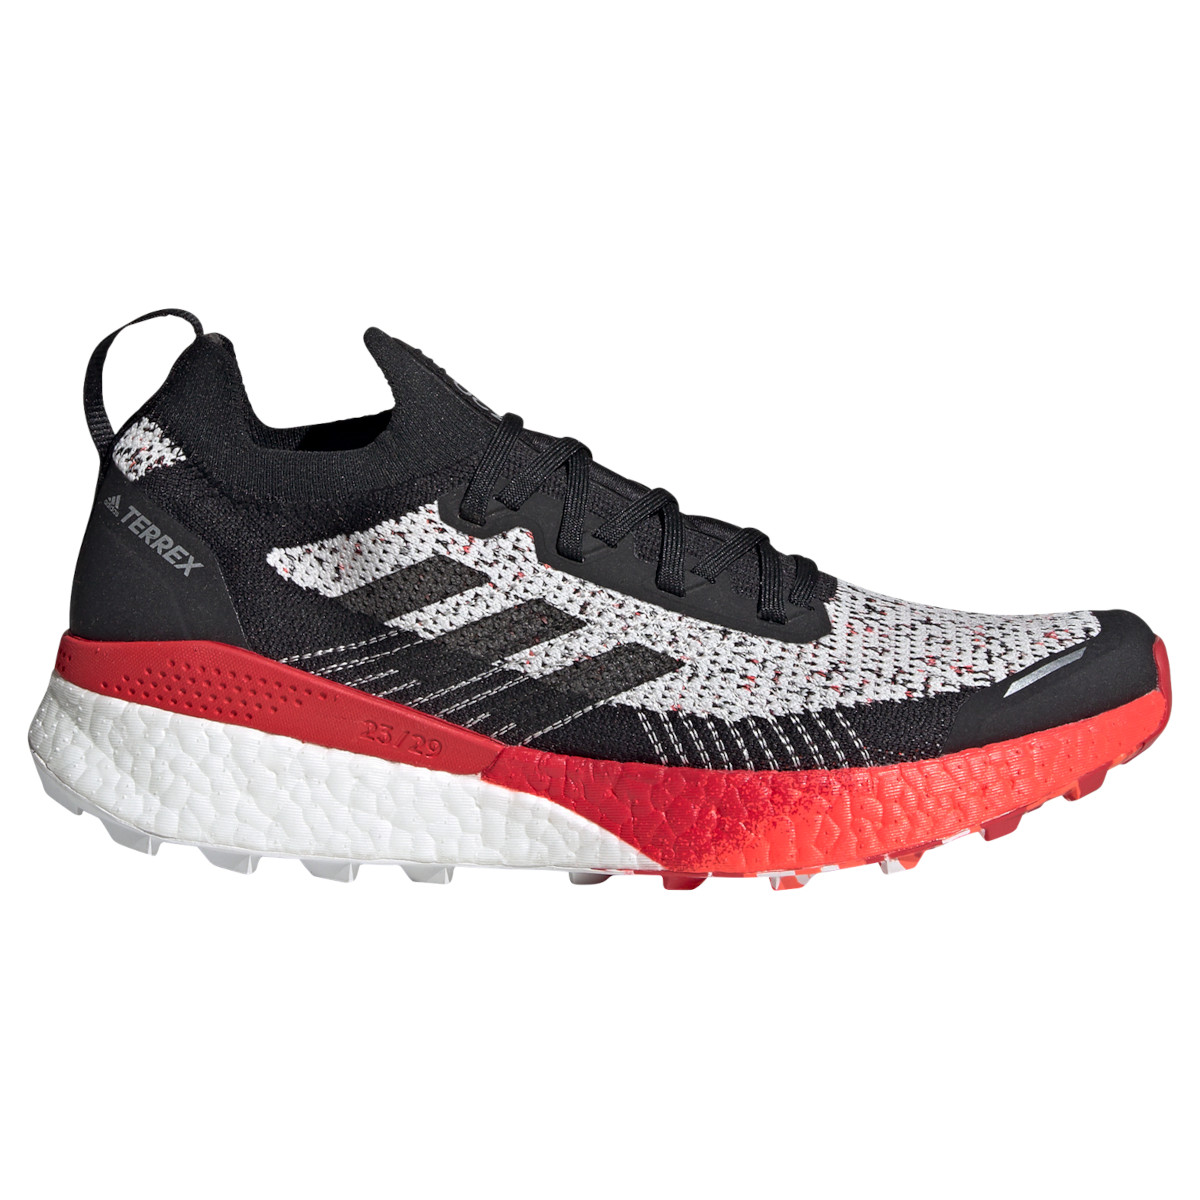 adidas Men's TERREX Two Ultra Parley Trail Running Shoes - crystal white/core black/scarlet FV7194